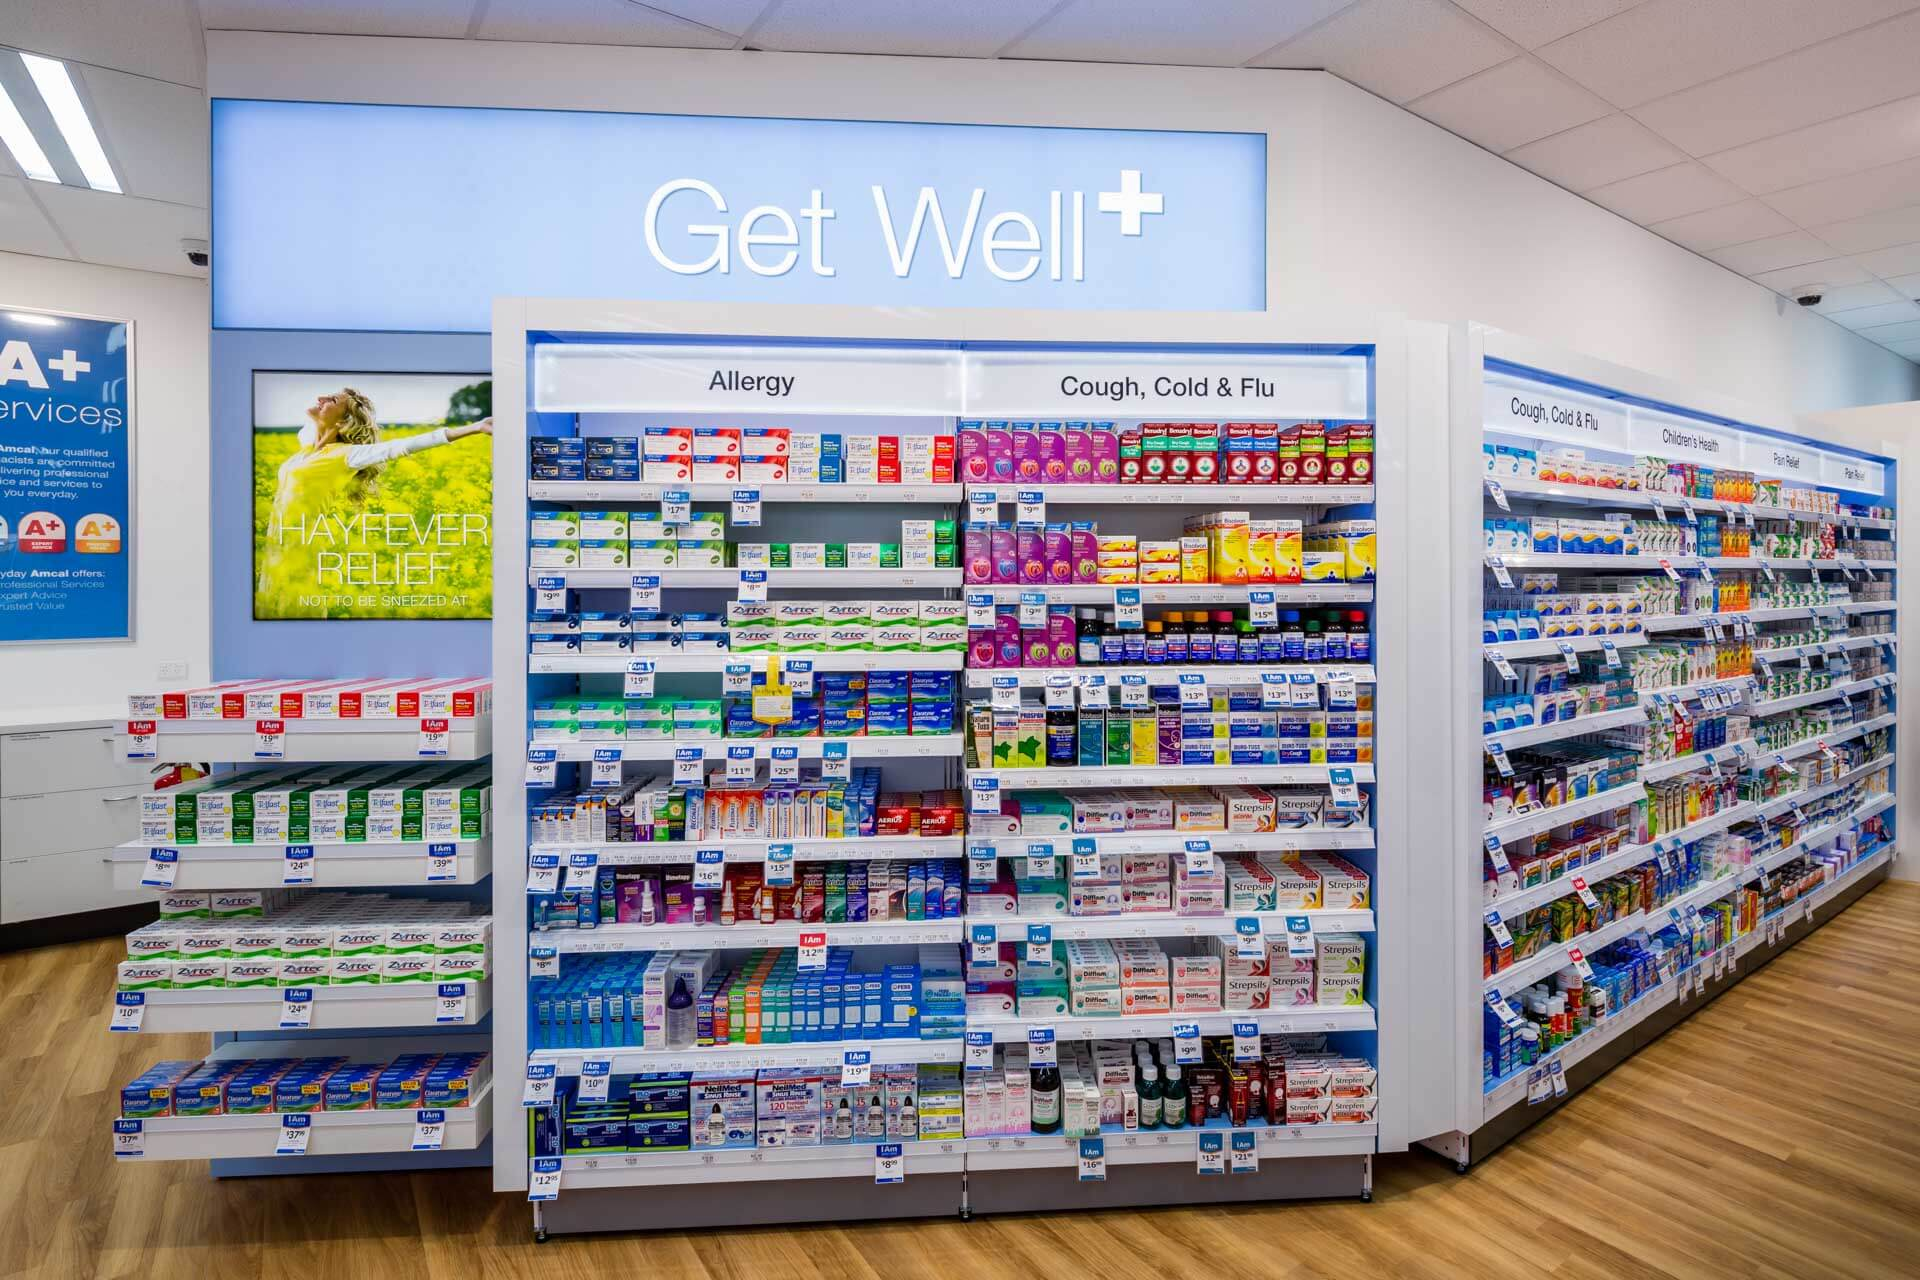 amcal+ pharmacy internal photograph of Get well product area by sigma pharmaceuticals in stud park shopping centre